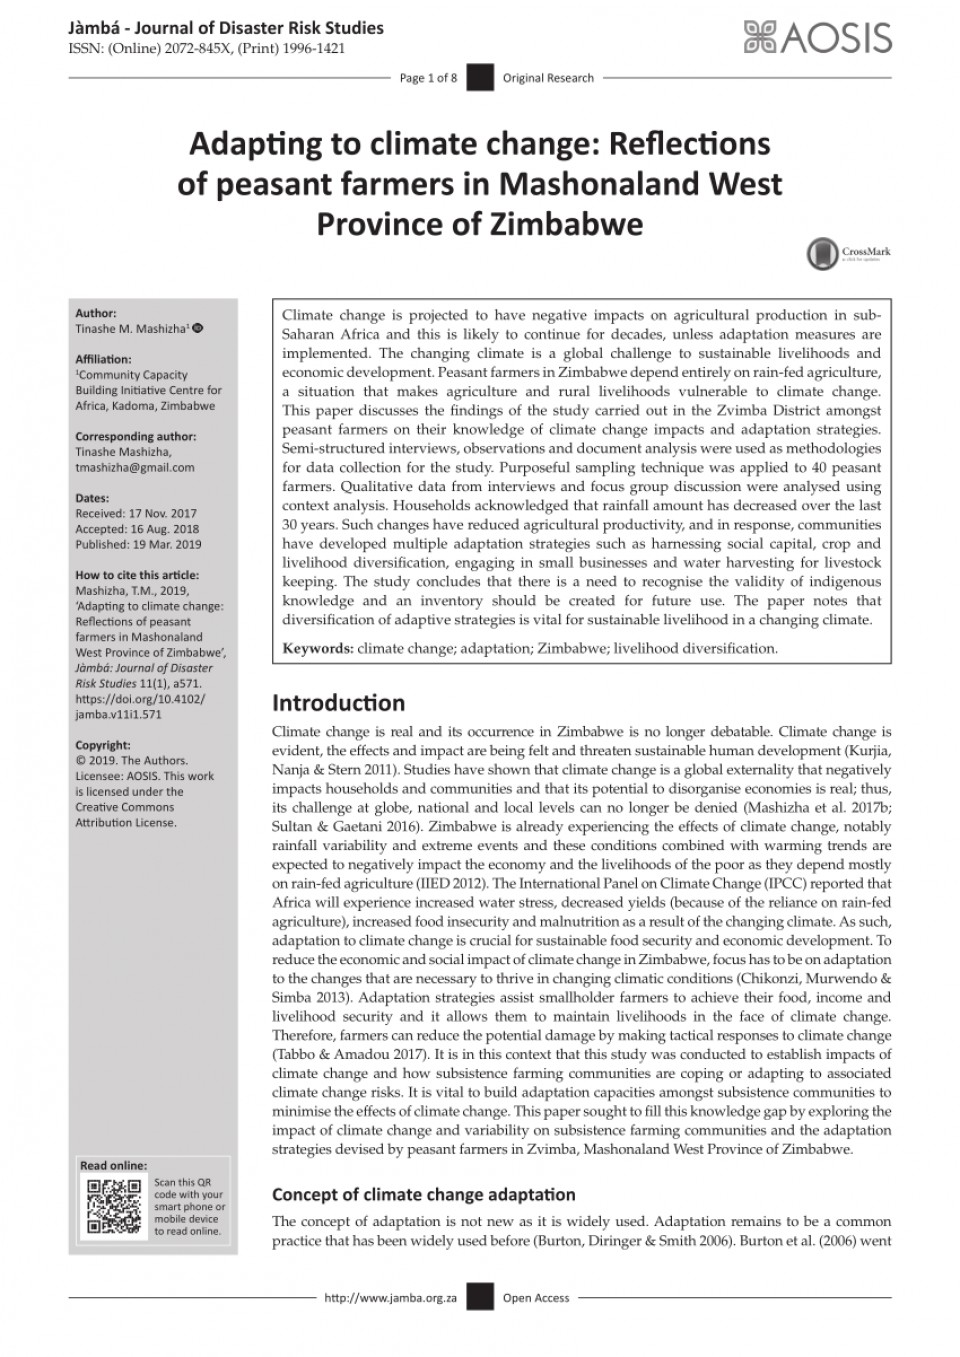 005 Research Paper Pdf Papers On Climate Change In Zimbabwe Imposing 960